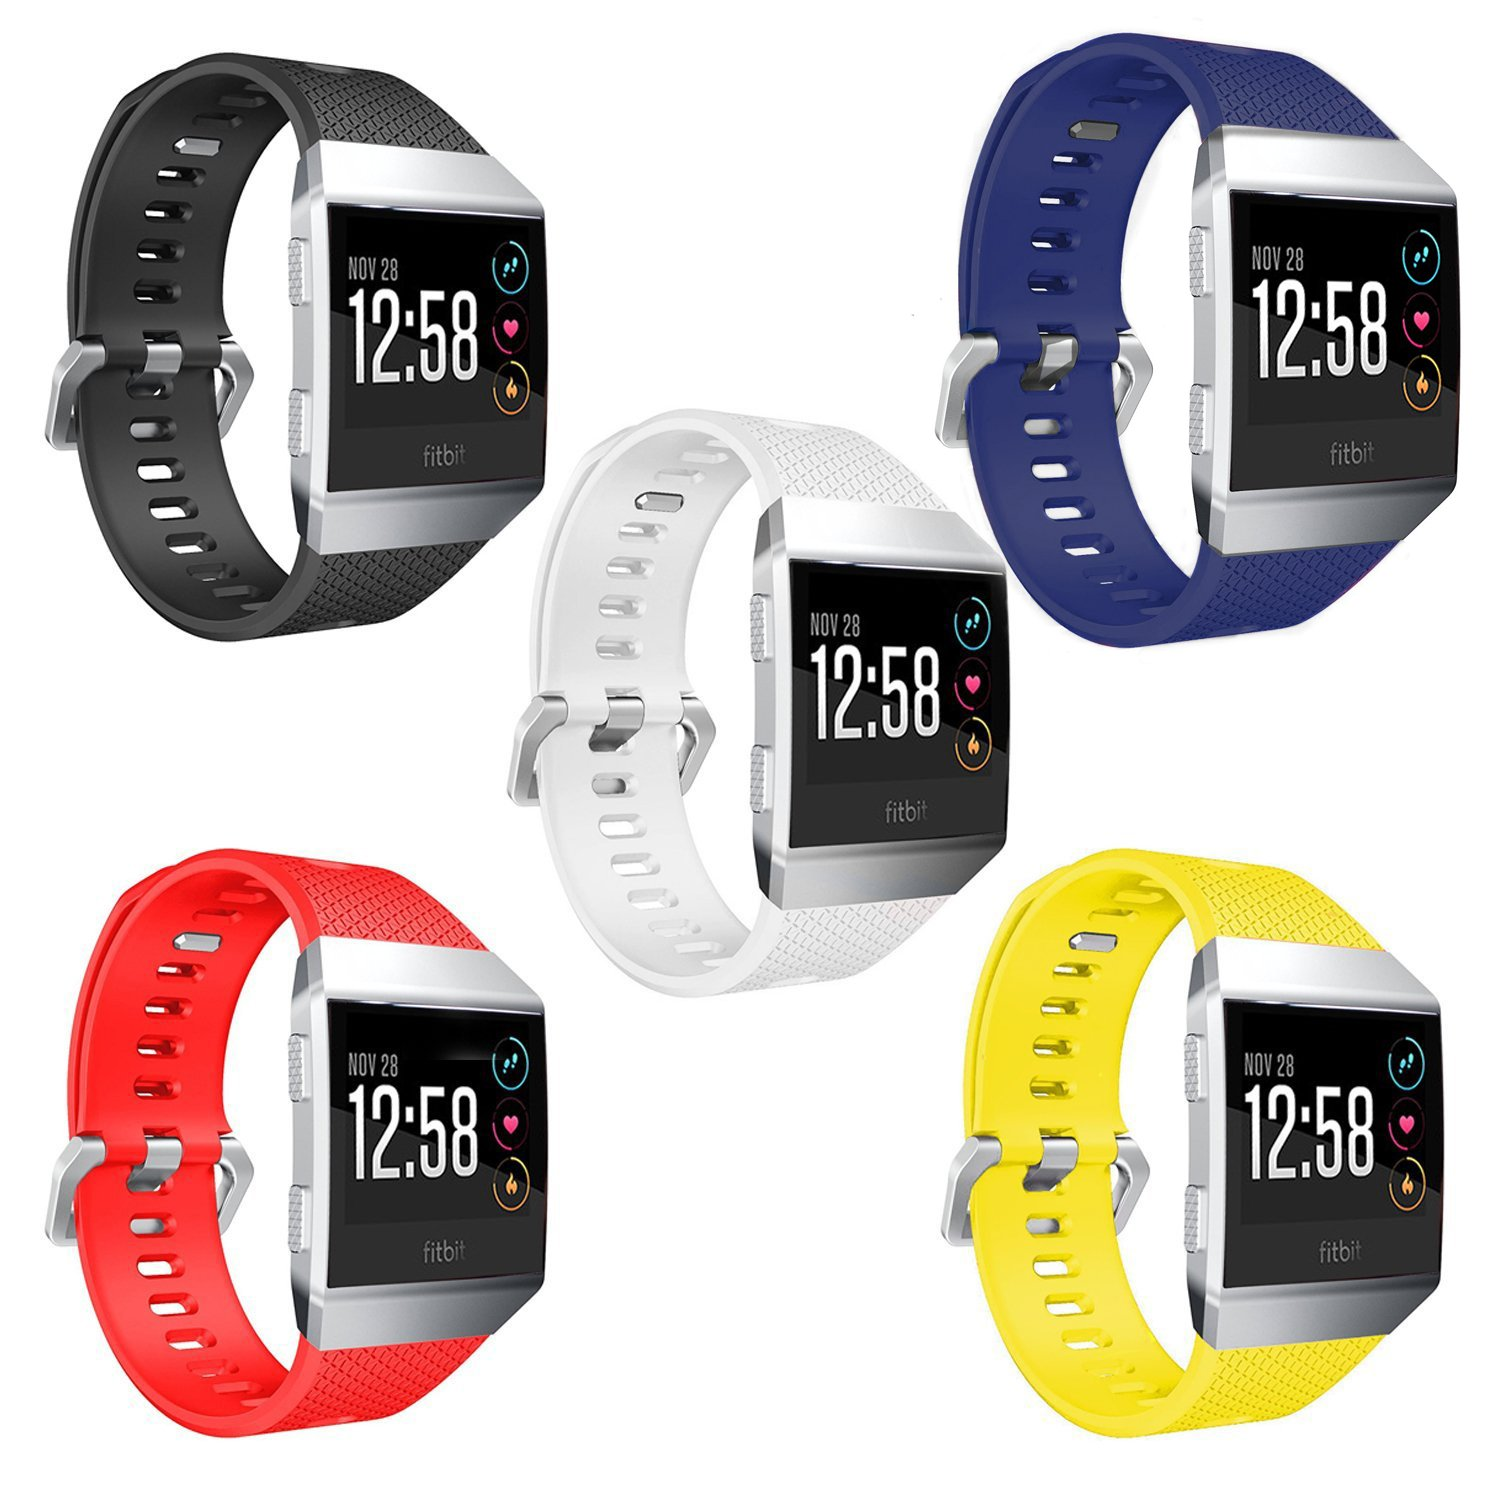 Orzly Correas Reloj Fitbit Iconic, Multipack de 5 Correas ...